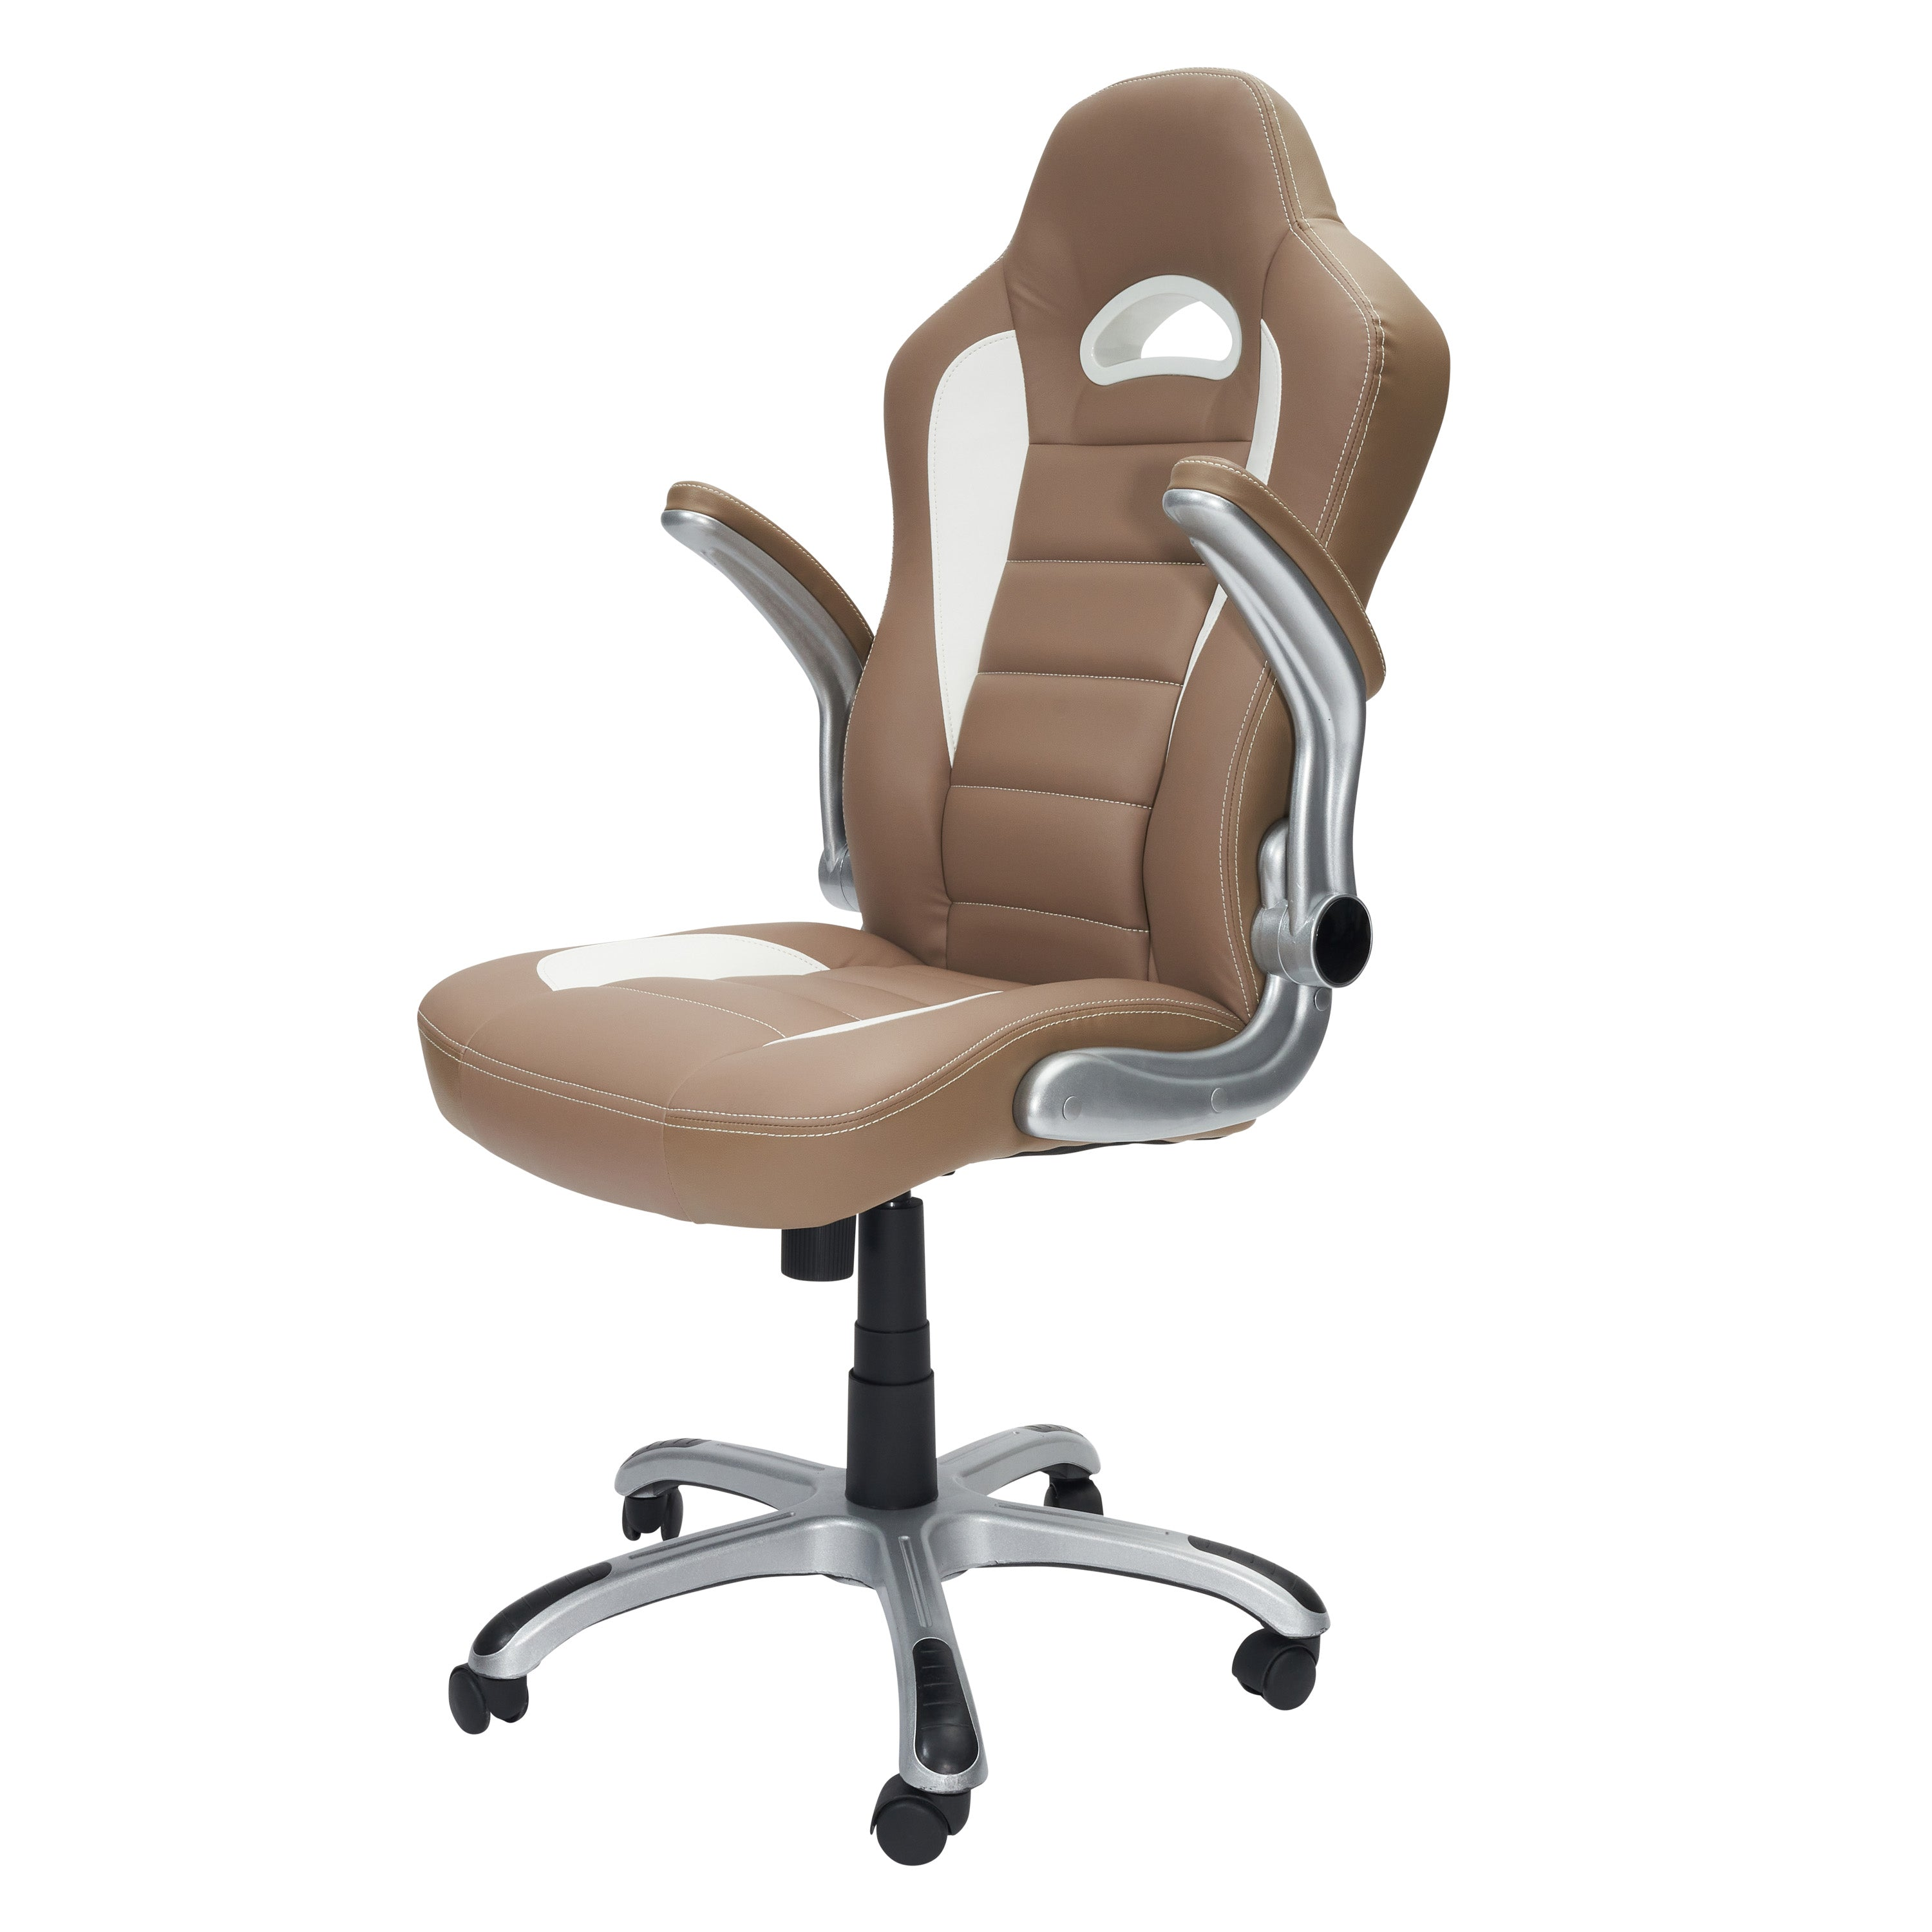 Awe Inspiring High Back Executive Sport Race Office Chair With Flip Up Arms Dailytribune Chair Design For Home Dailytribuneorg